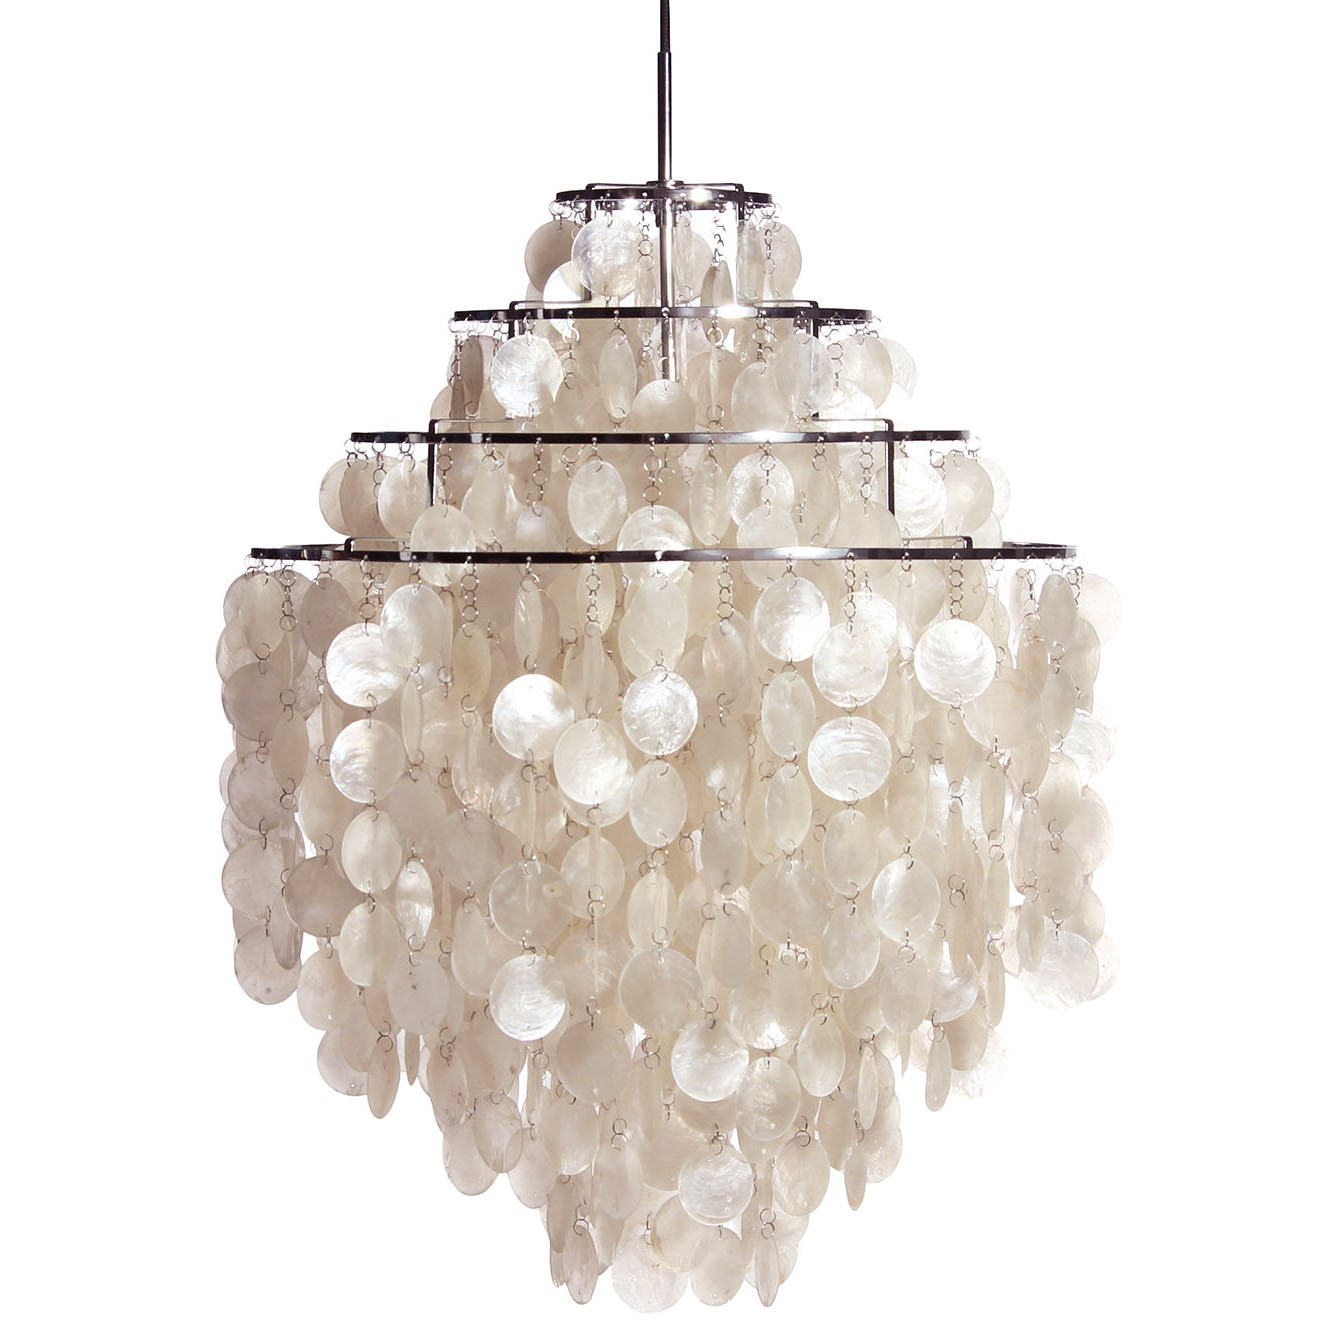 Large White FUN 0 DM Shell Capiz Ceiling Light Pendant